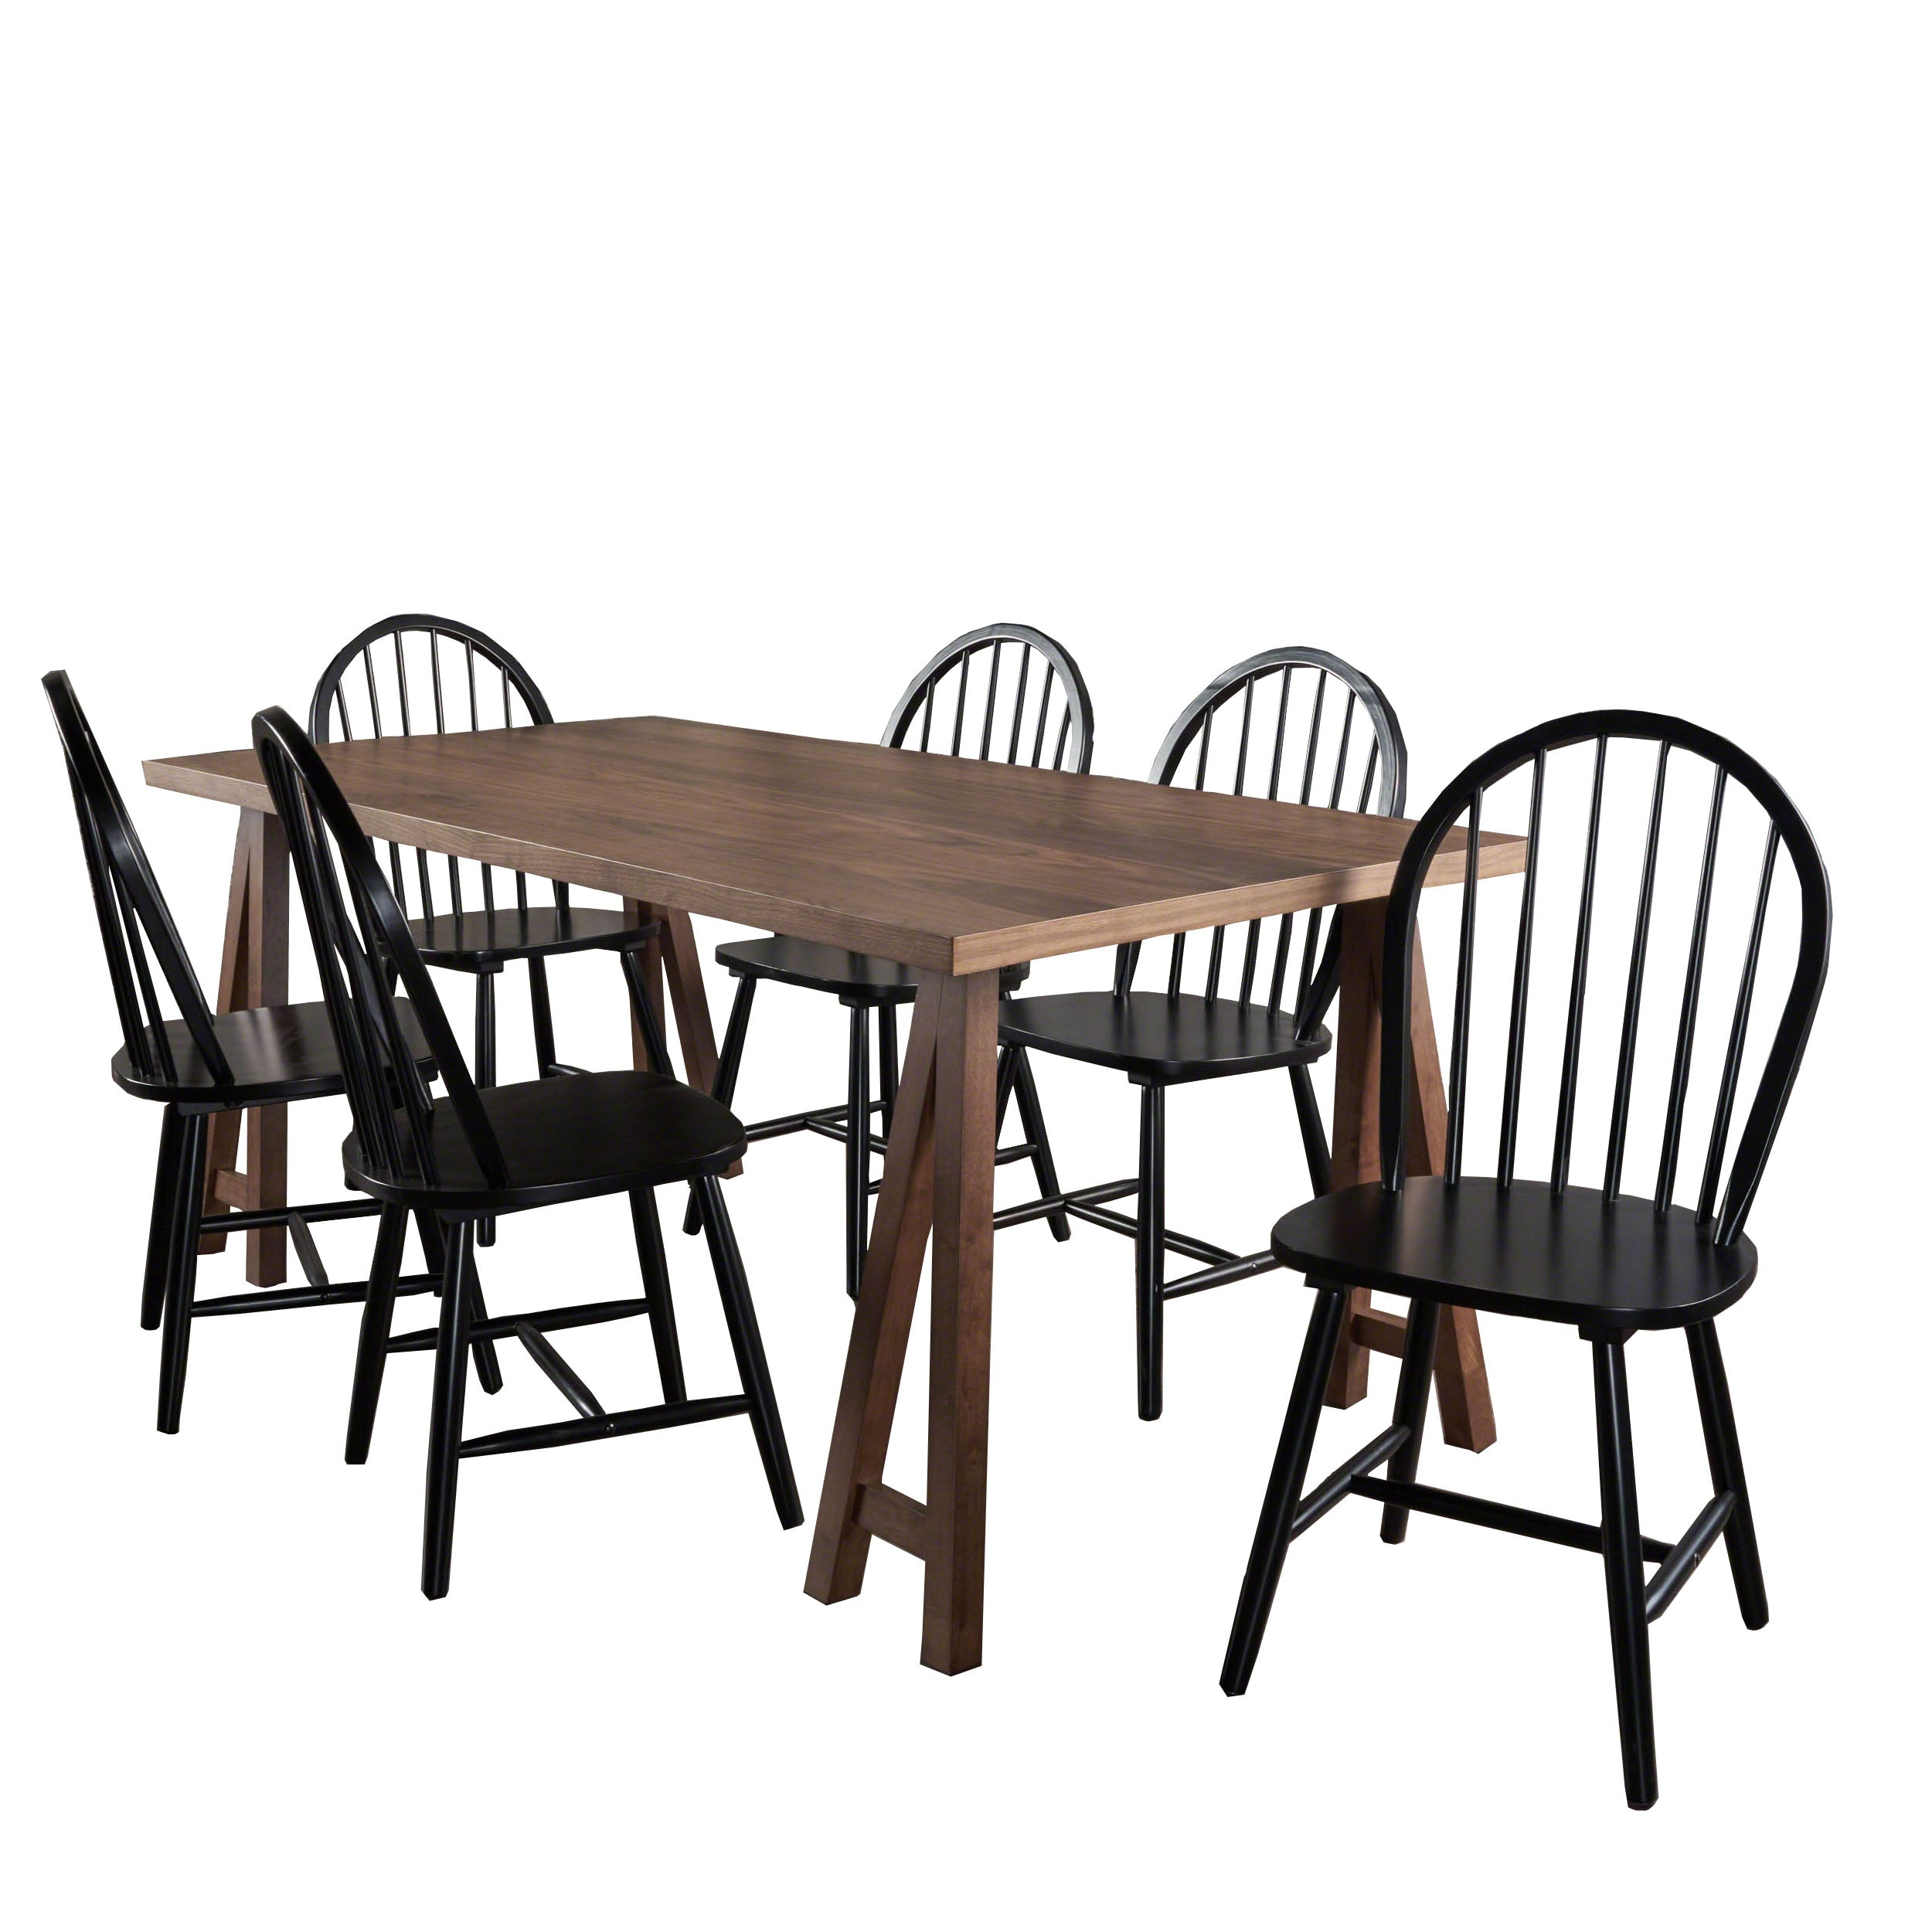 Angela Farmhouse Cottage 7 Piece Faux Wood Dining Set with Rubberwood Chairs